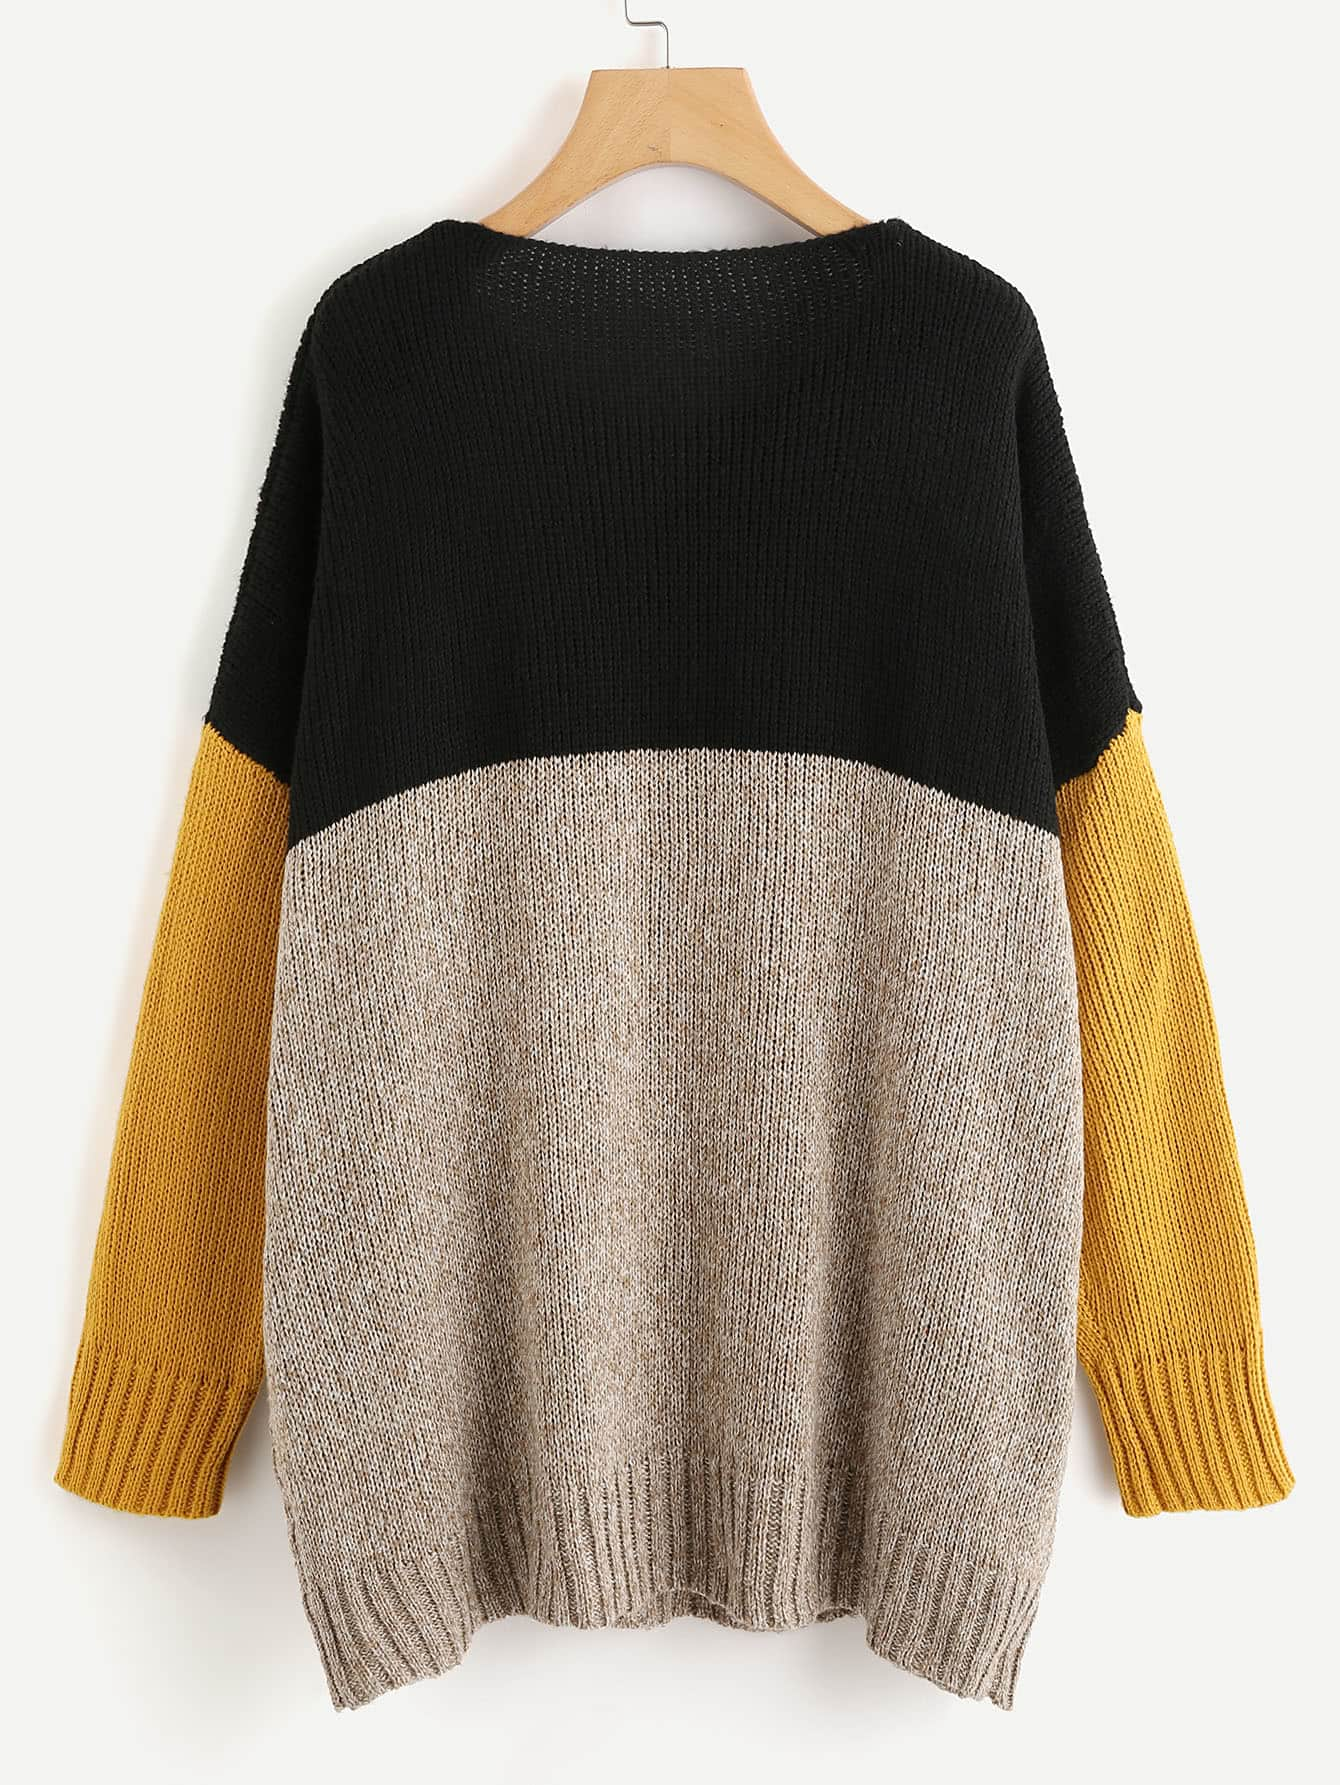 Oversized Color Block Knit Sweater | Sweater | SHEIN | Joan & Vern's Apparel